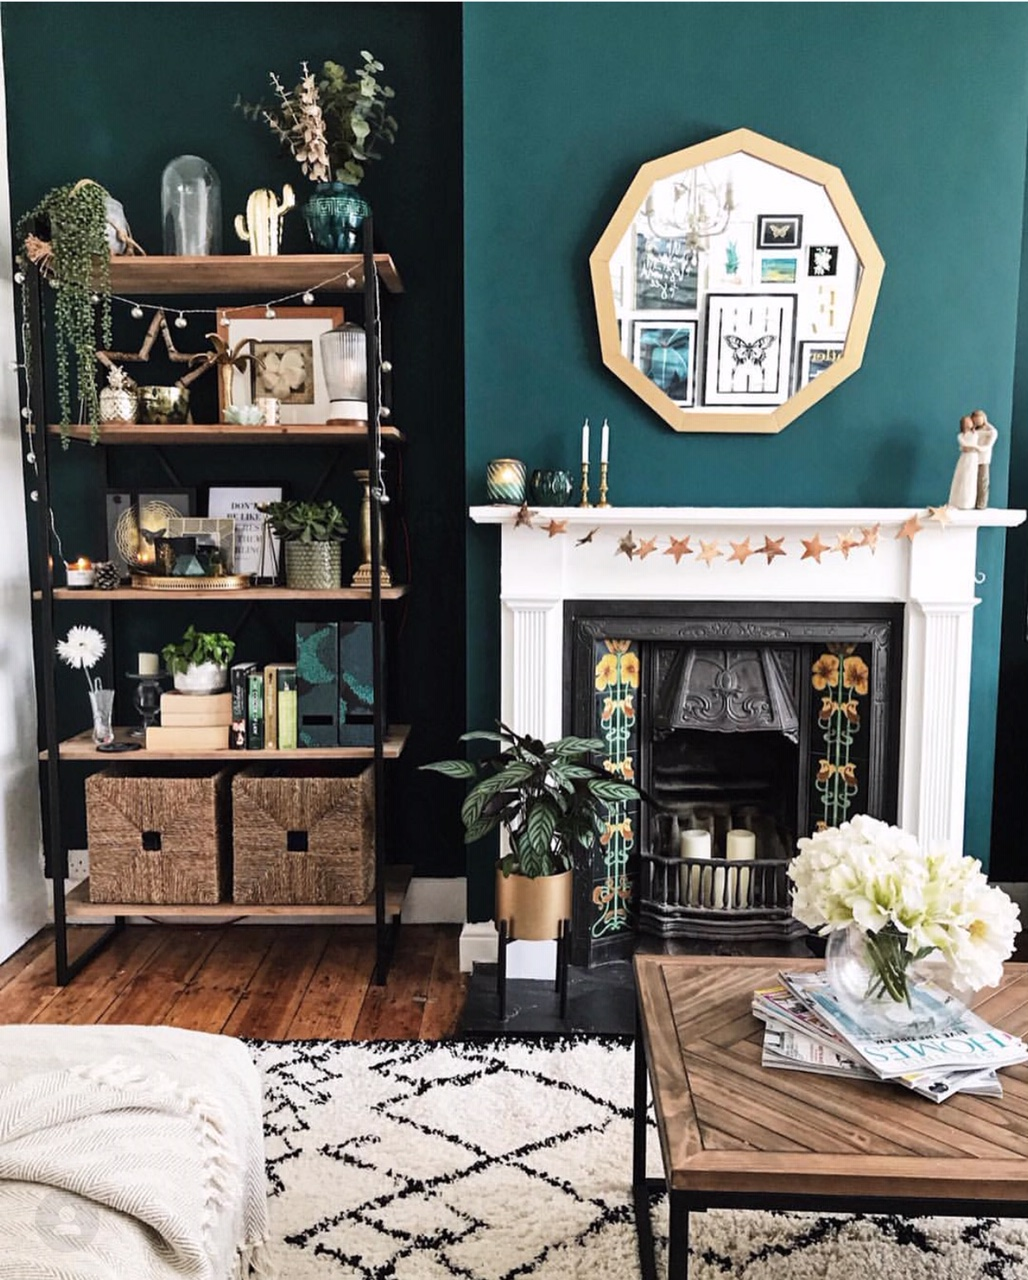 Nine sided mirror, parquet coffee table from  La Redoute , seagrass baskets from  Ikea  and shelving from  Maisons Du Monde